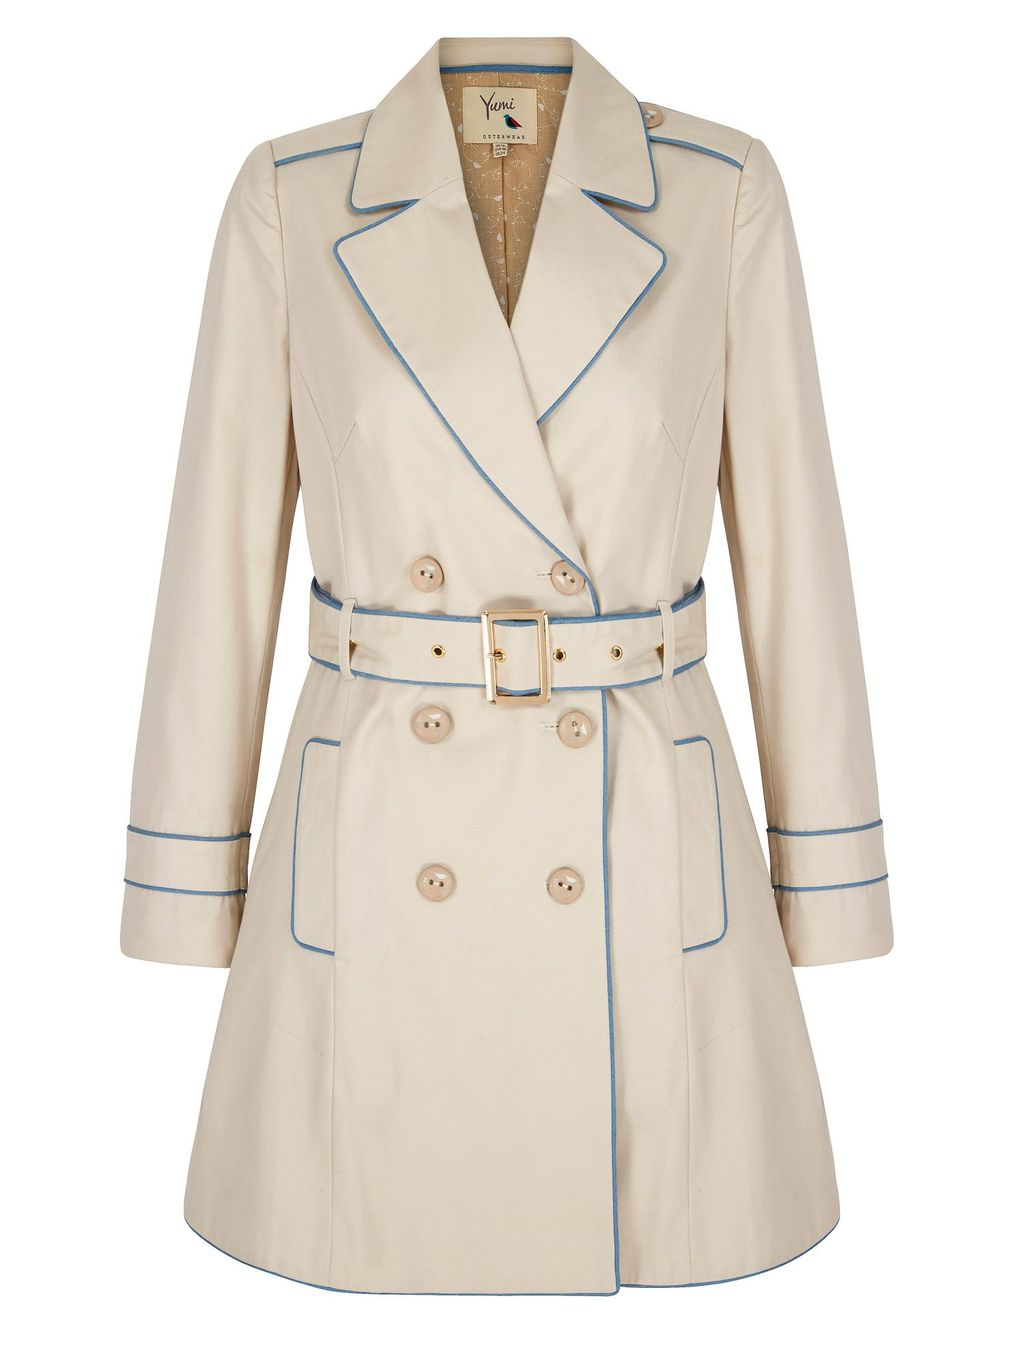 Contrast Trench Coat, Stone - pattern: plain; style: trench coat; collar: standard lapel/rever collar; length: mid thigh; predominant colour: stone; occasions: work; fit: tailored/fitted; fibres: cotton - 100%; waist detail: belted waist/tie at waist/drawstring; sleeve length: long sleeve; sleeve style: standard; texture group: cotton feel fabrics; collar break: medium; pattern type: fabric; season: a/w 2015; wardrobe: highlight